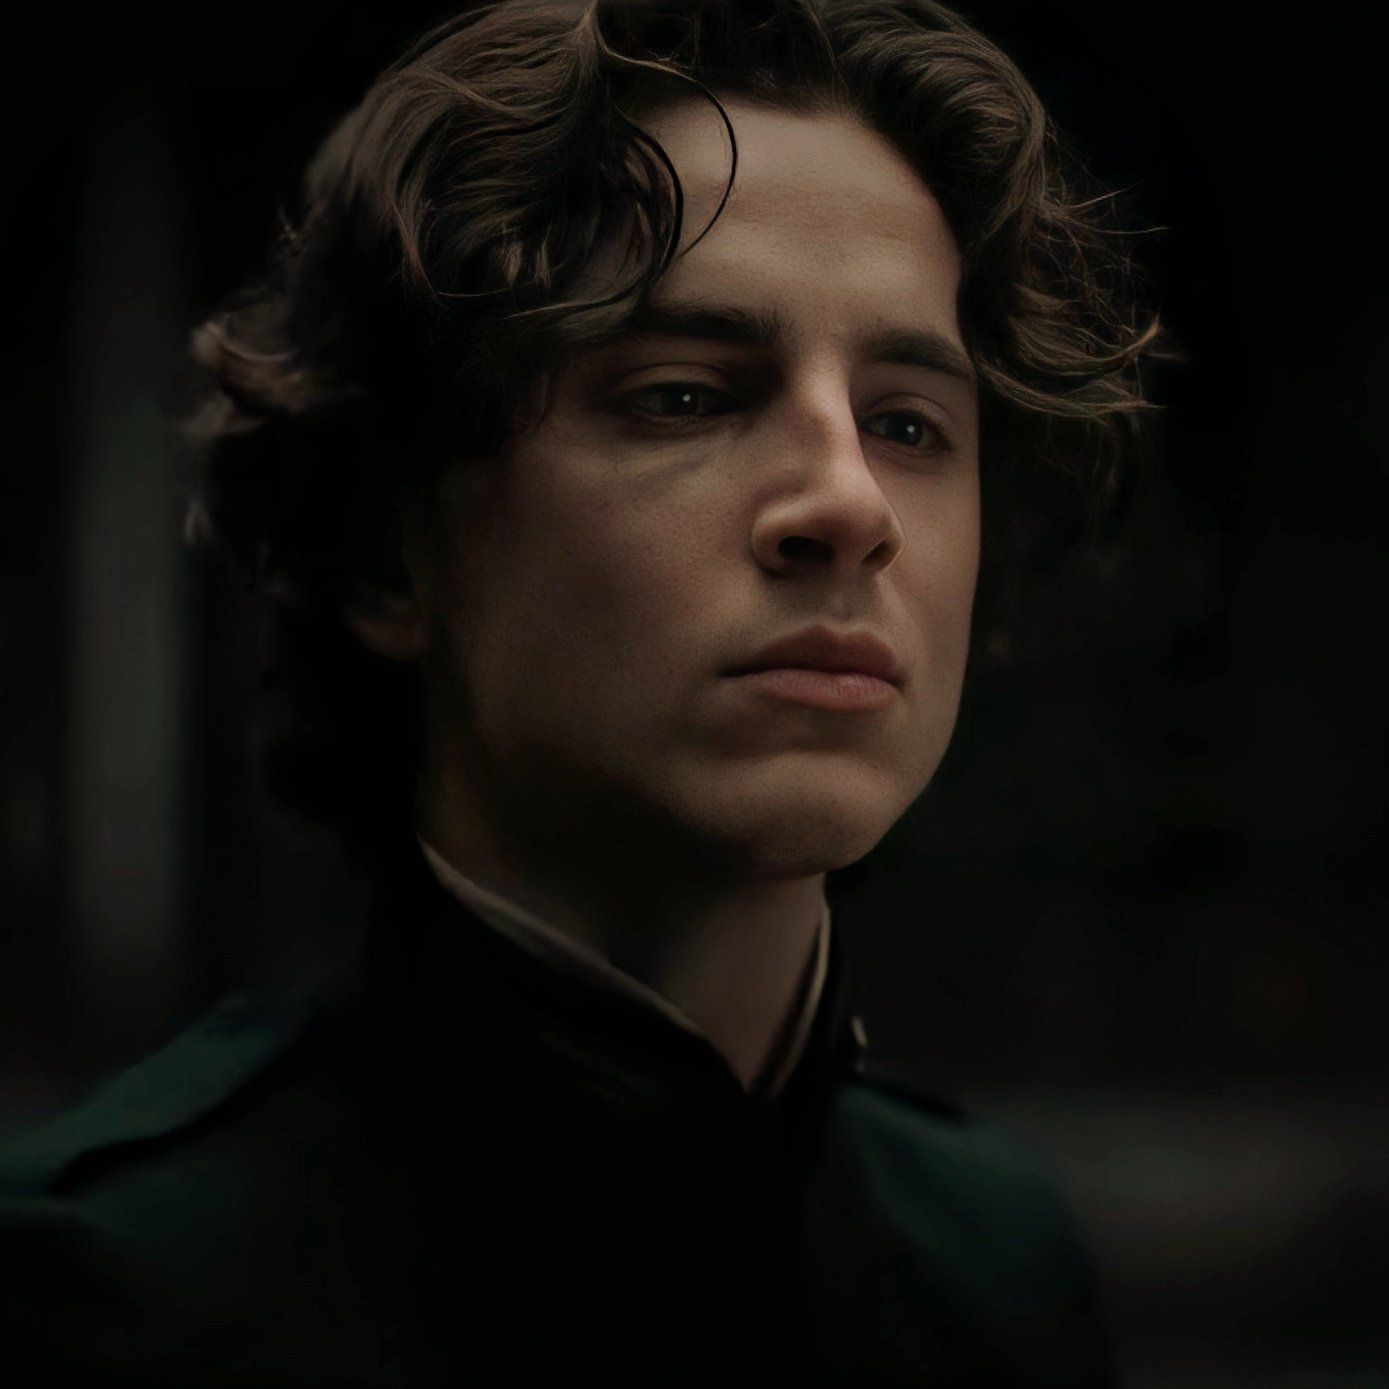 Dee On Twitter All The Young Dudes Timothee Chalamet Regulus Black